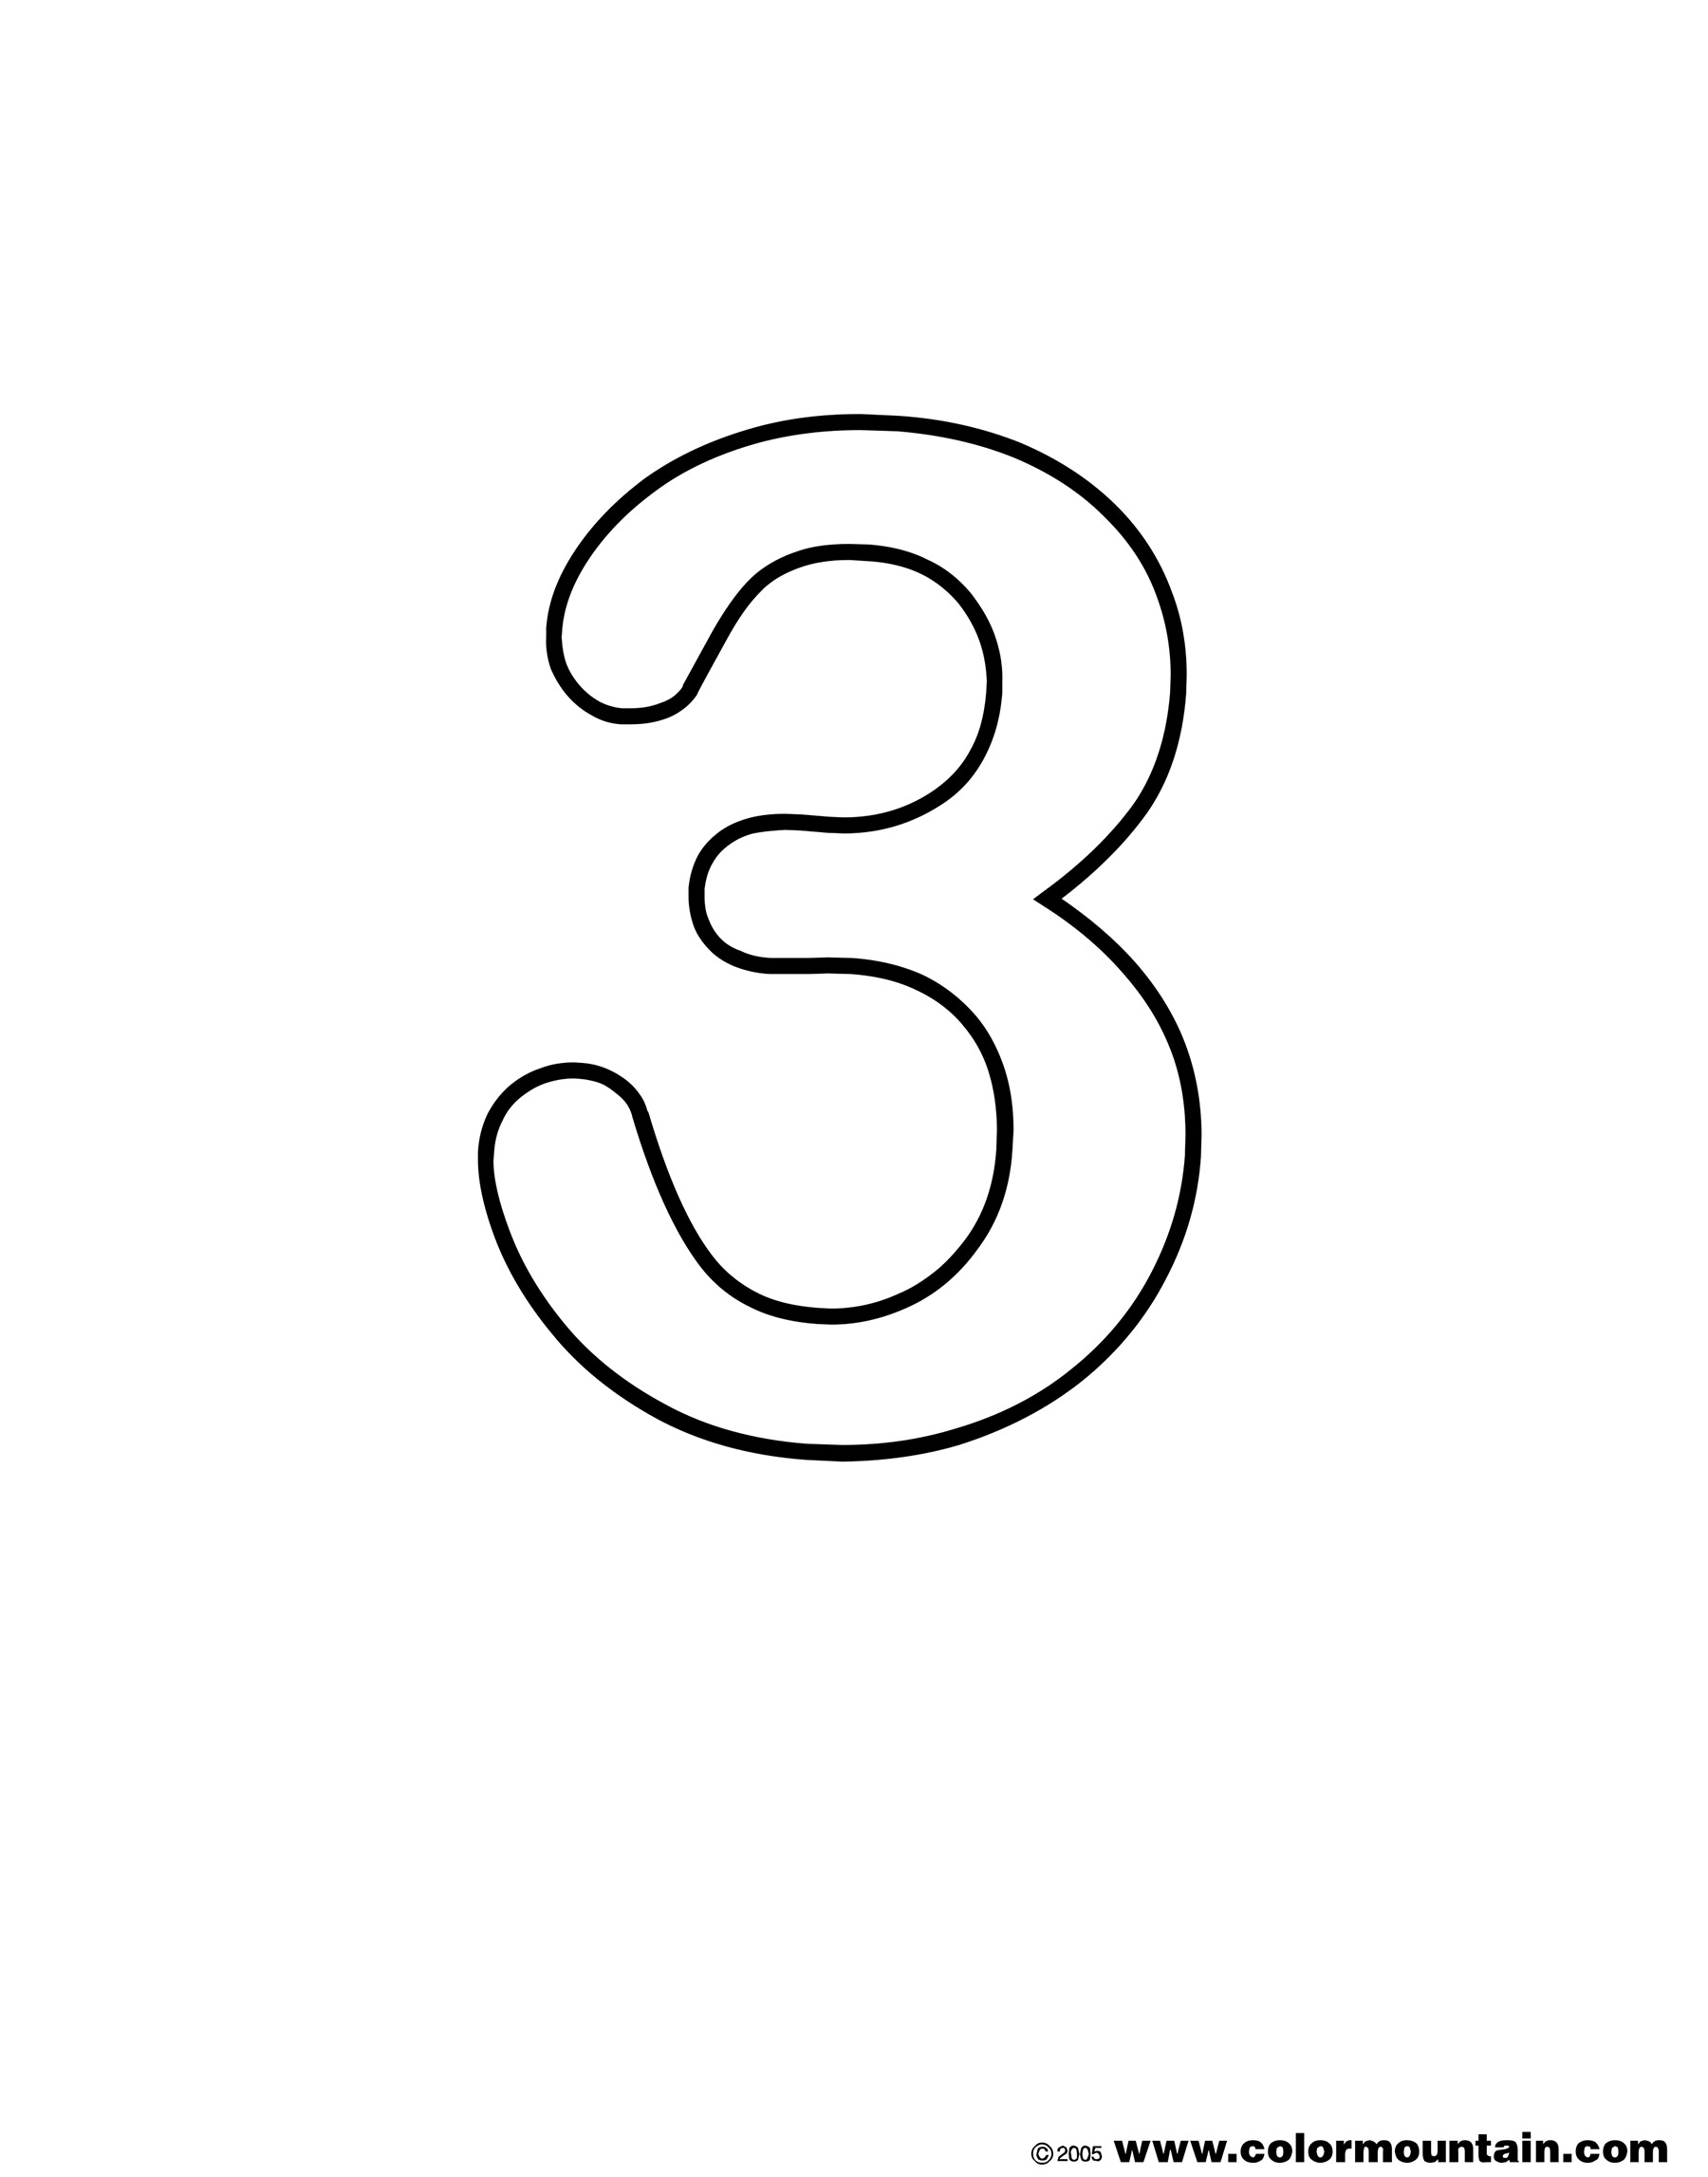 number 3 coloring worksheets number three coloring sheet create a printout or activity 3 coloring number worksheets